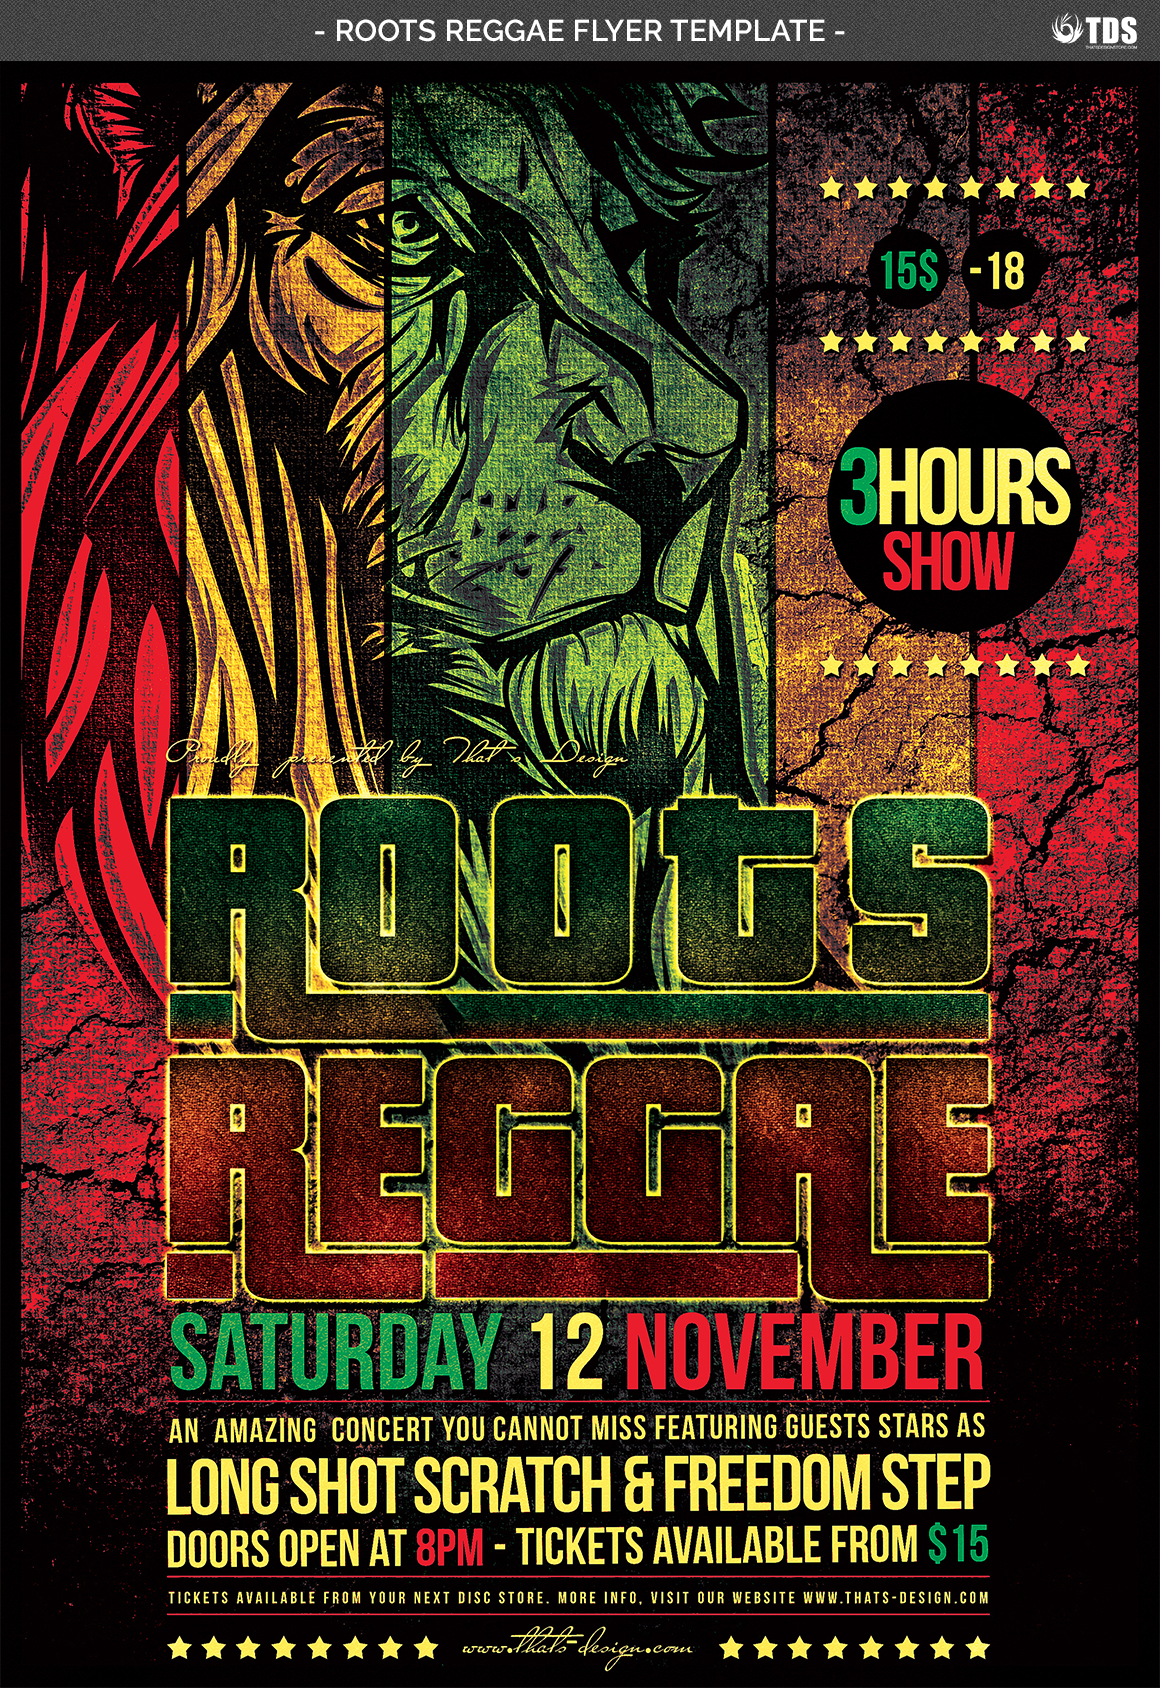 Roots Reggae Flyer Template example image 4